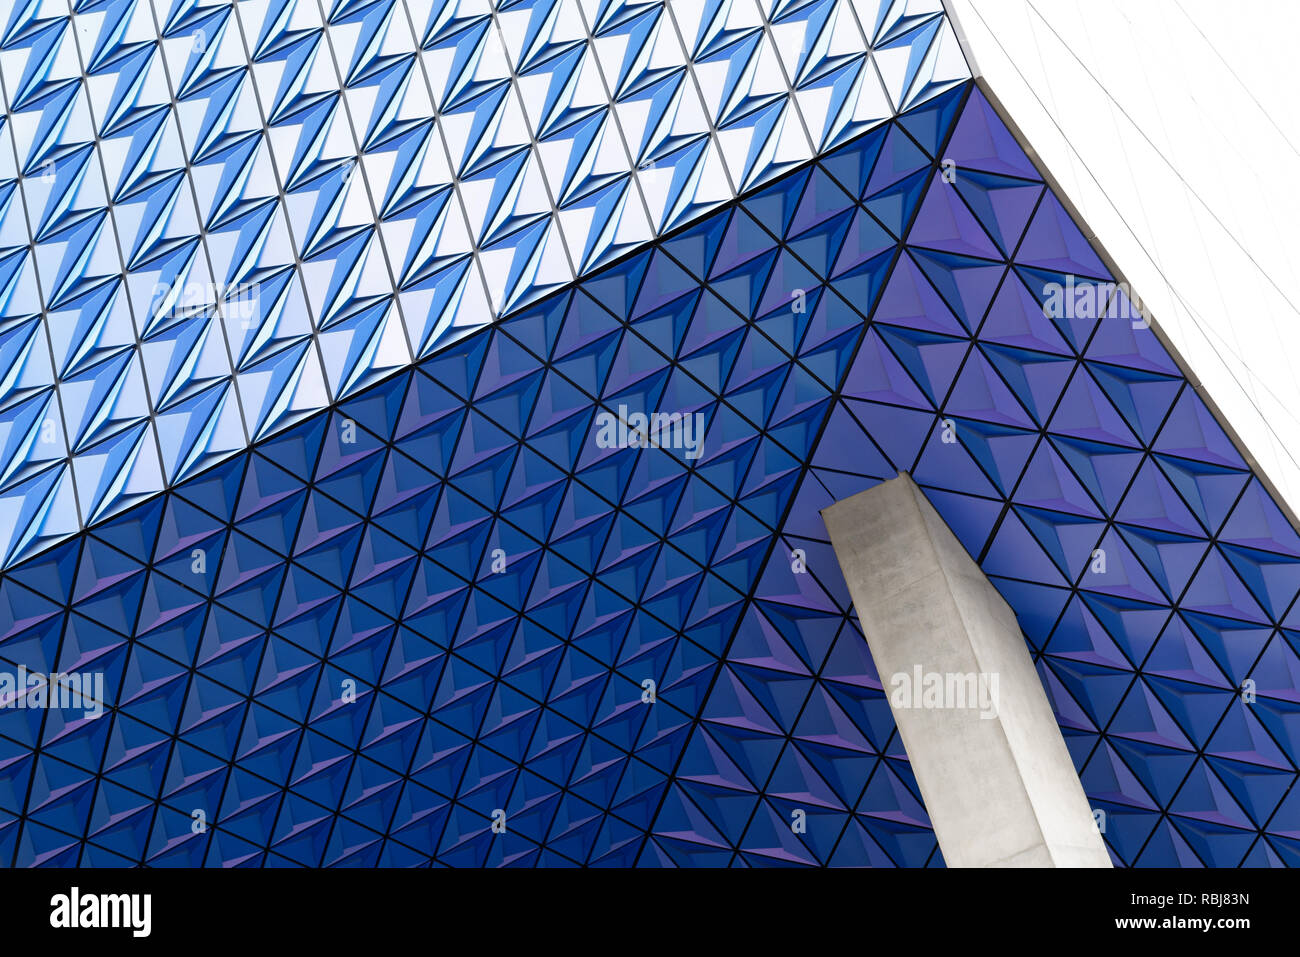 Architectural detail from the Ryerson University Student Learning Centre on Yonge Street in Toronto Canada - Stock Image